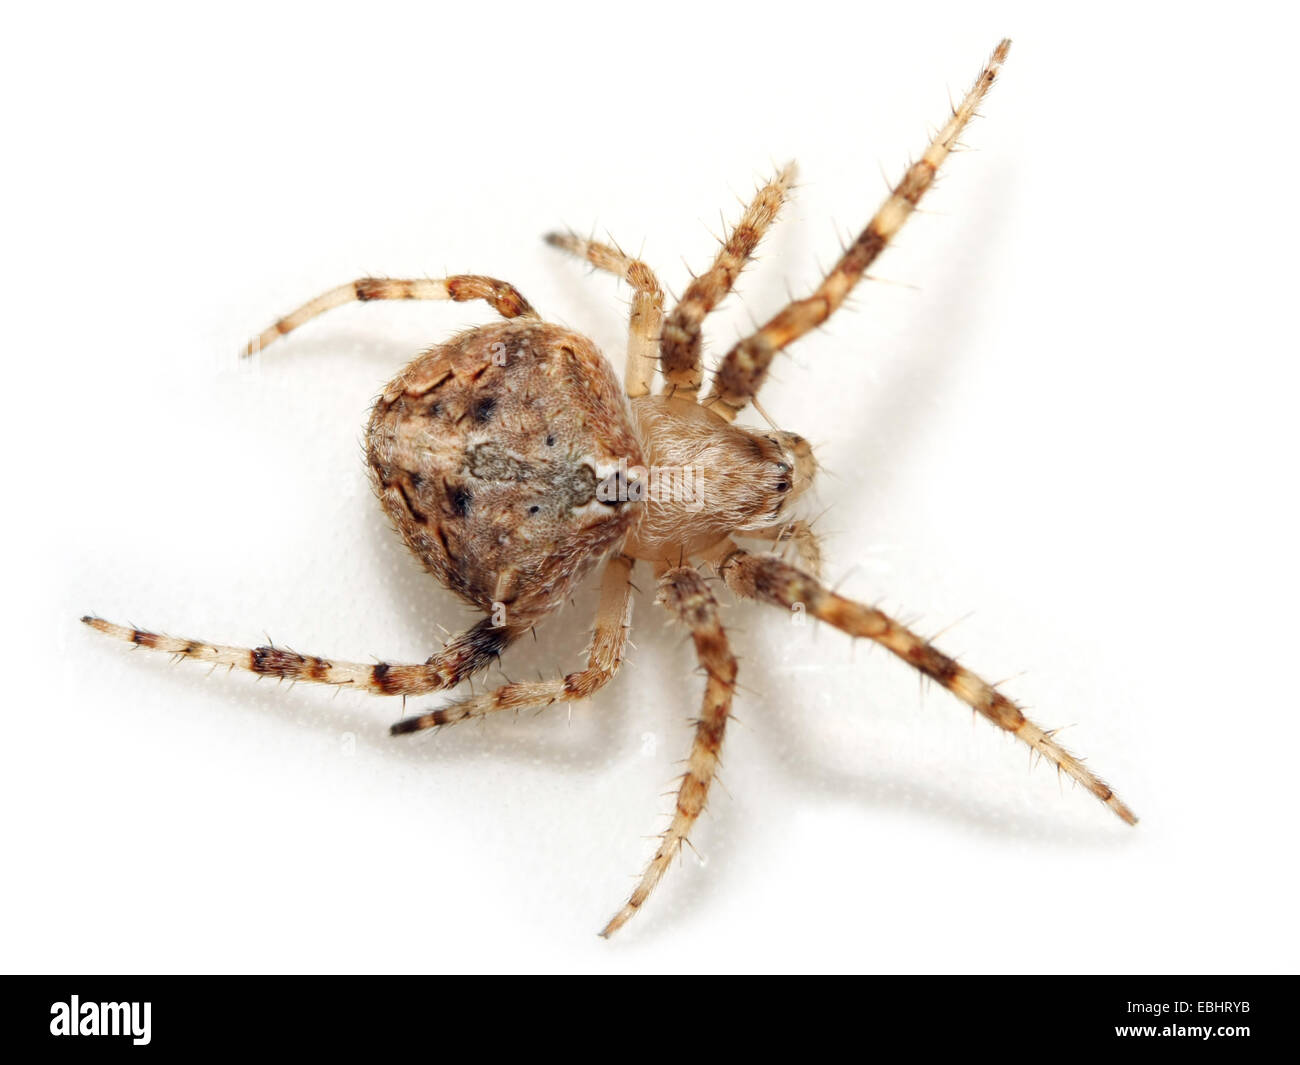 A female orbweaving spider (Neoscona subfusca) on white background. Orbweavers are part of the family Araneidae. - Stock Image